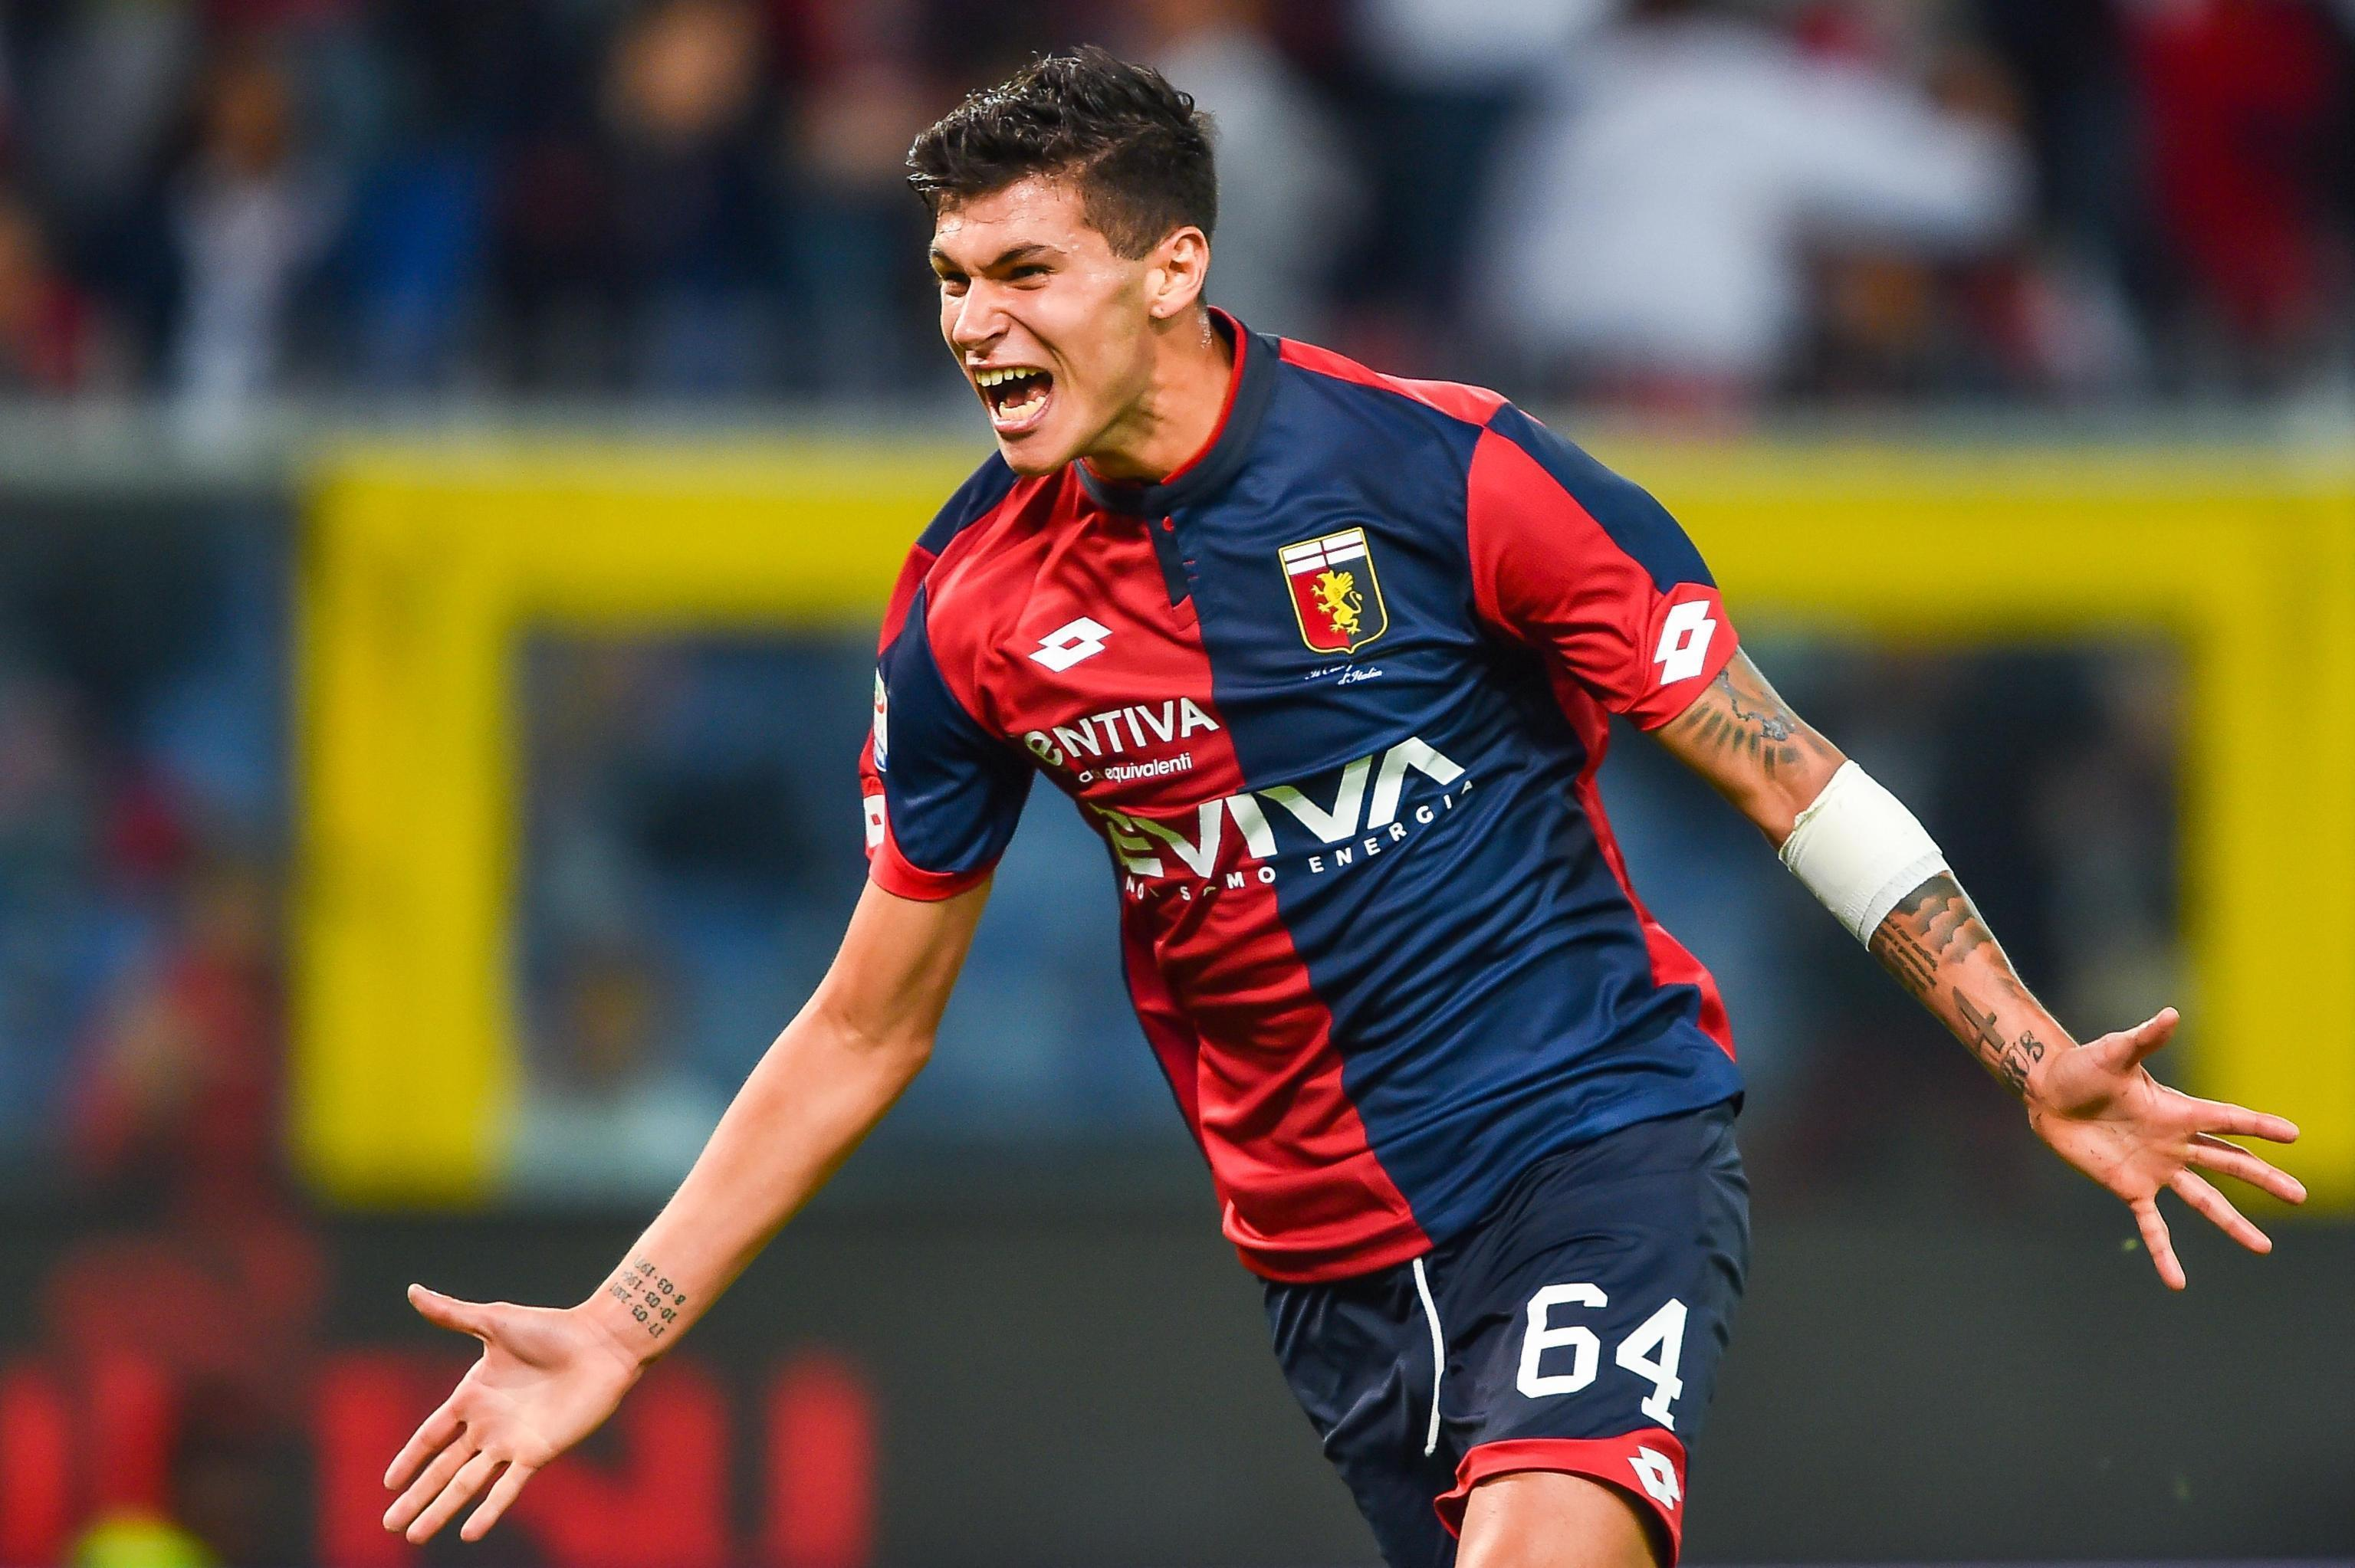 Monaco sign Genoa teenager Pietro Pellegri in £17.5m deal